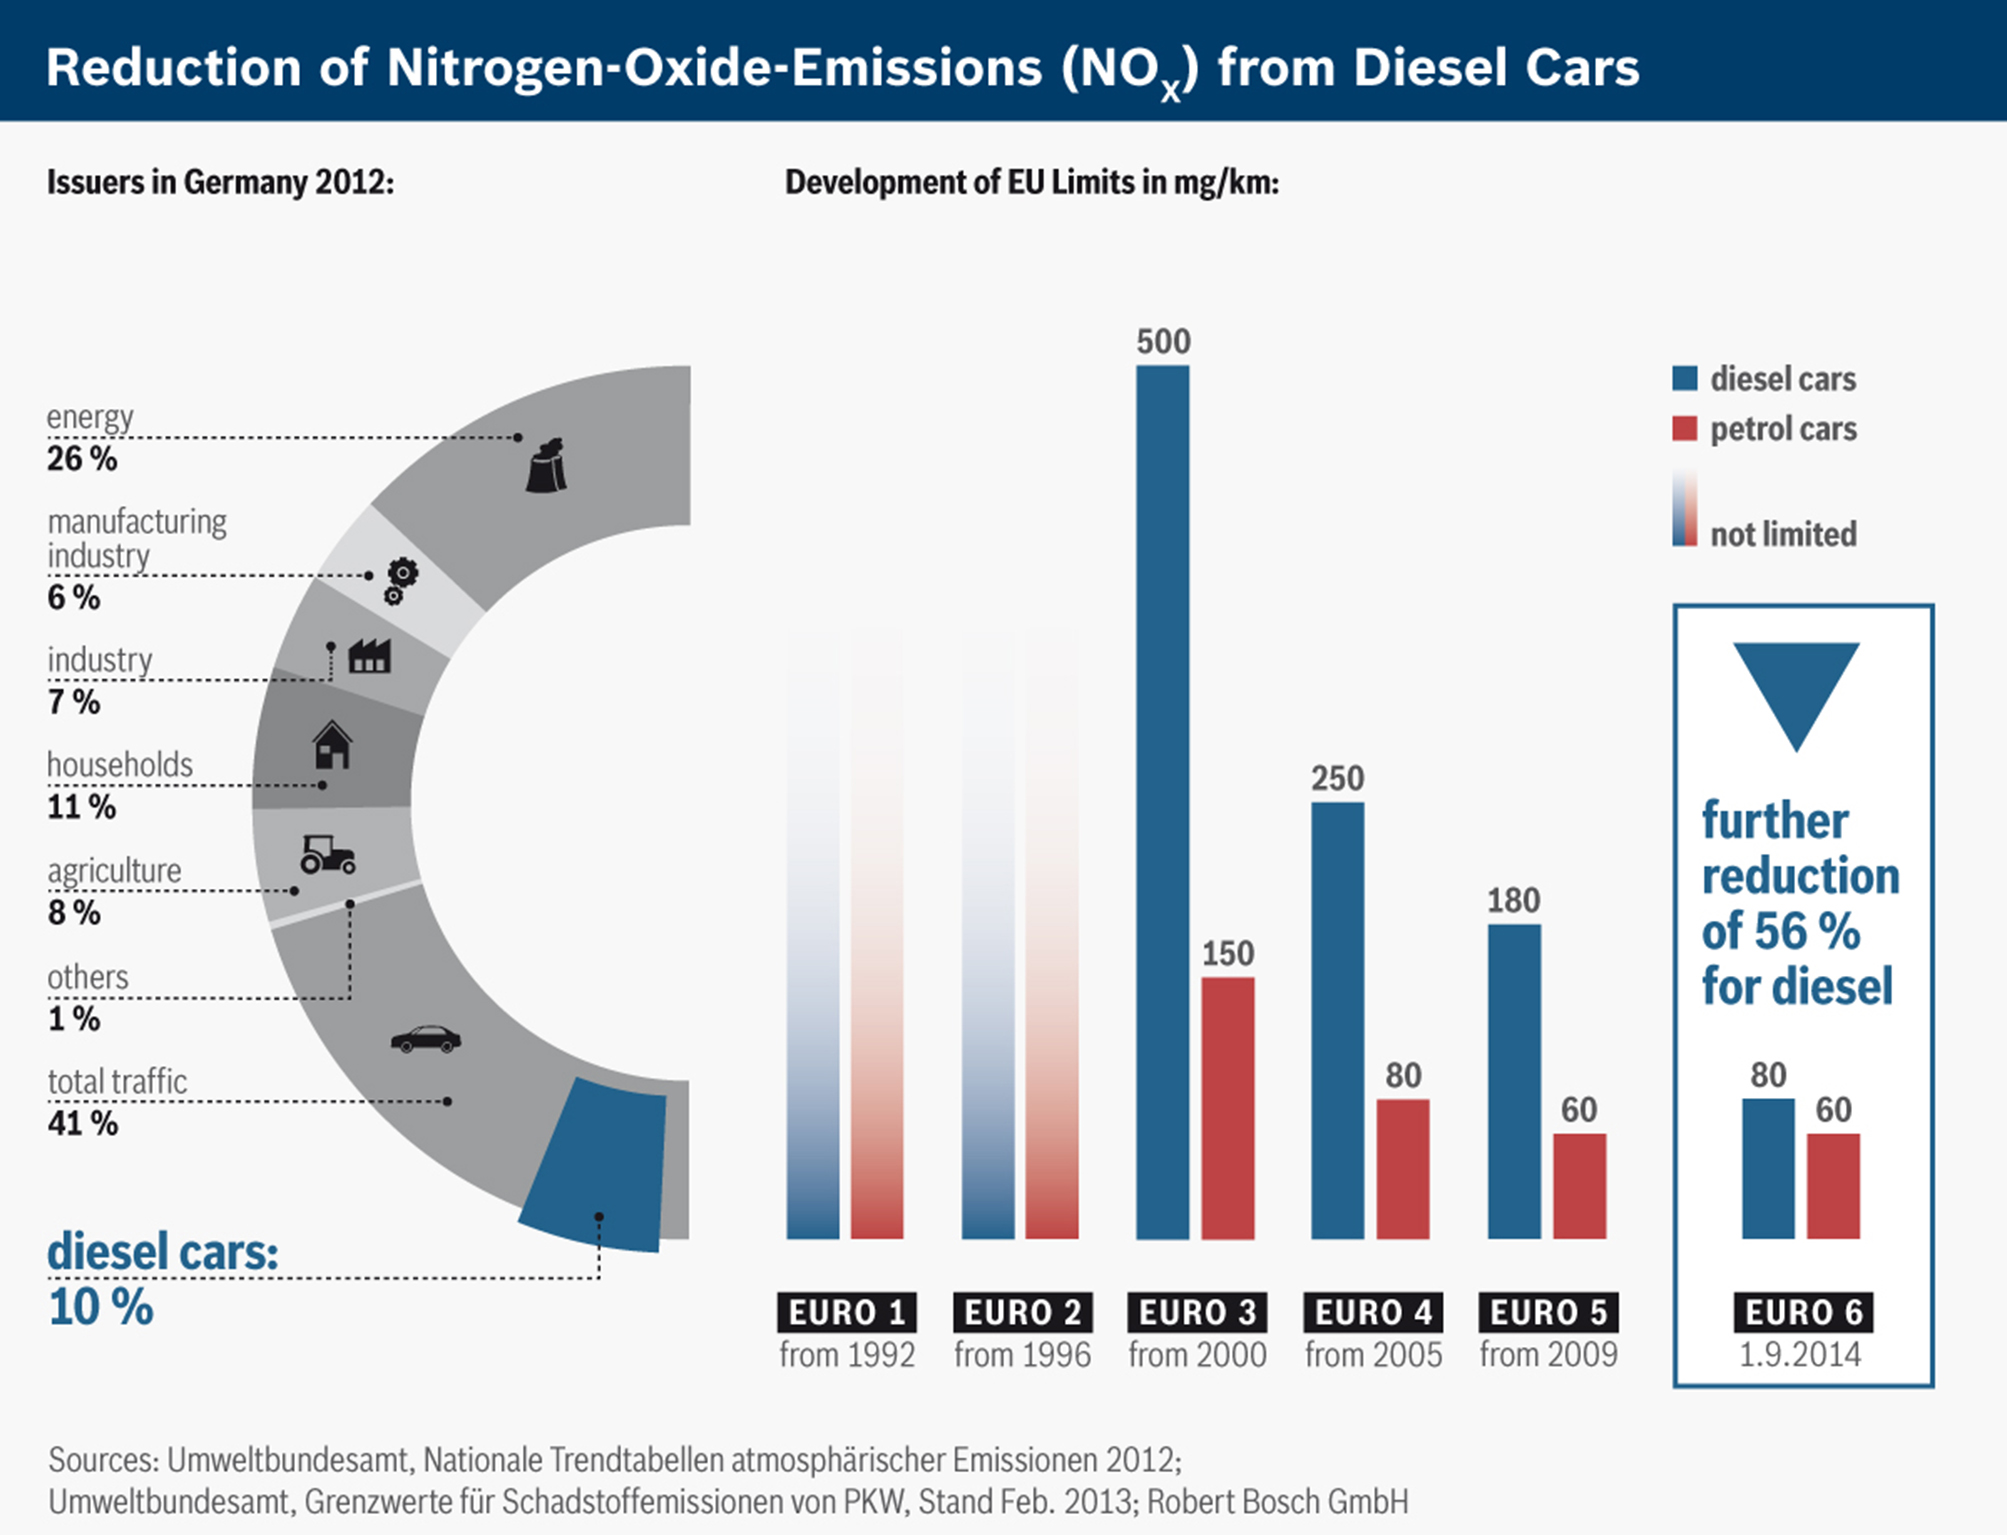 Reduction of NOx for diesel cars